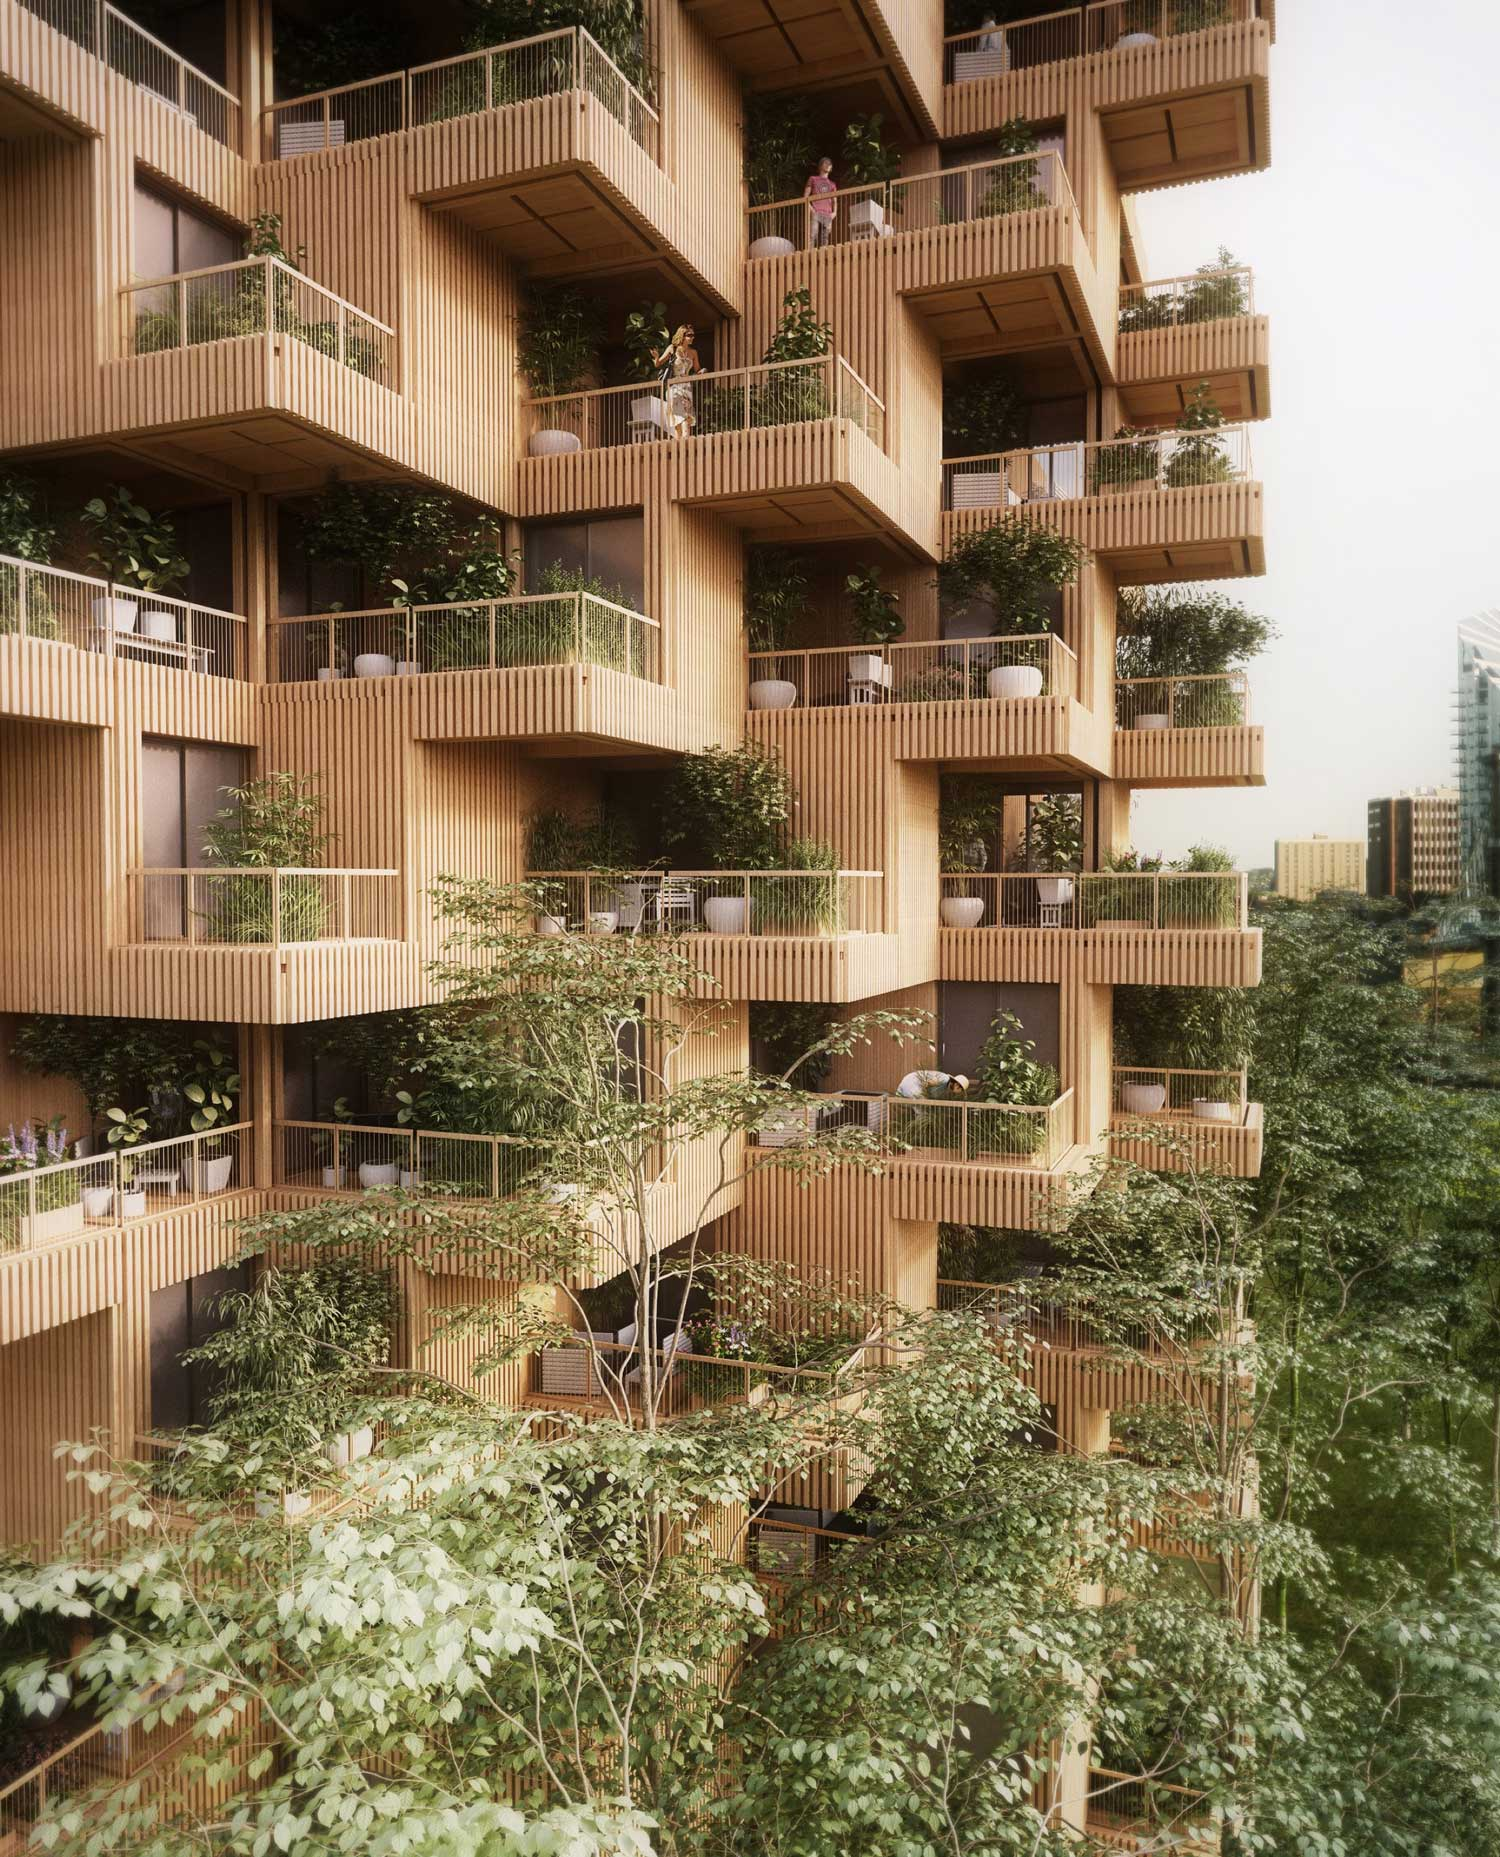 Penda Designs Modular Timber Tower Inspired by Habitat 67 for Toronto | Yellowtrace